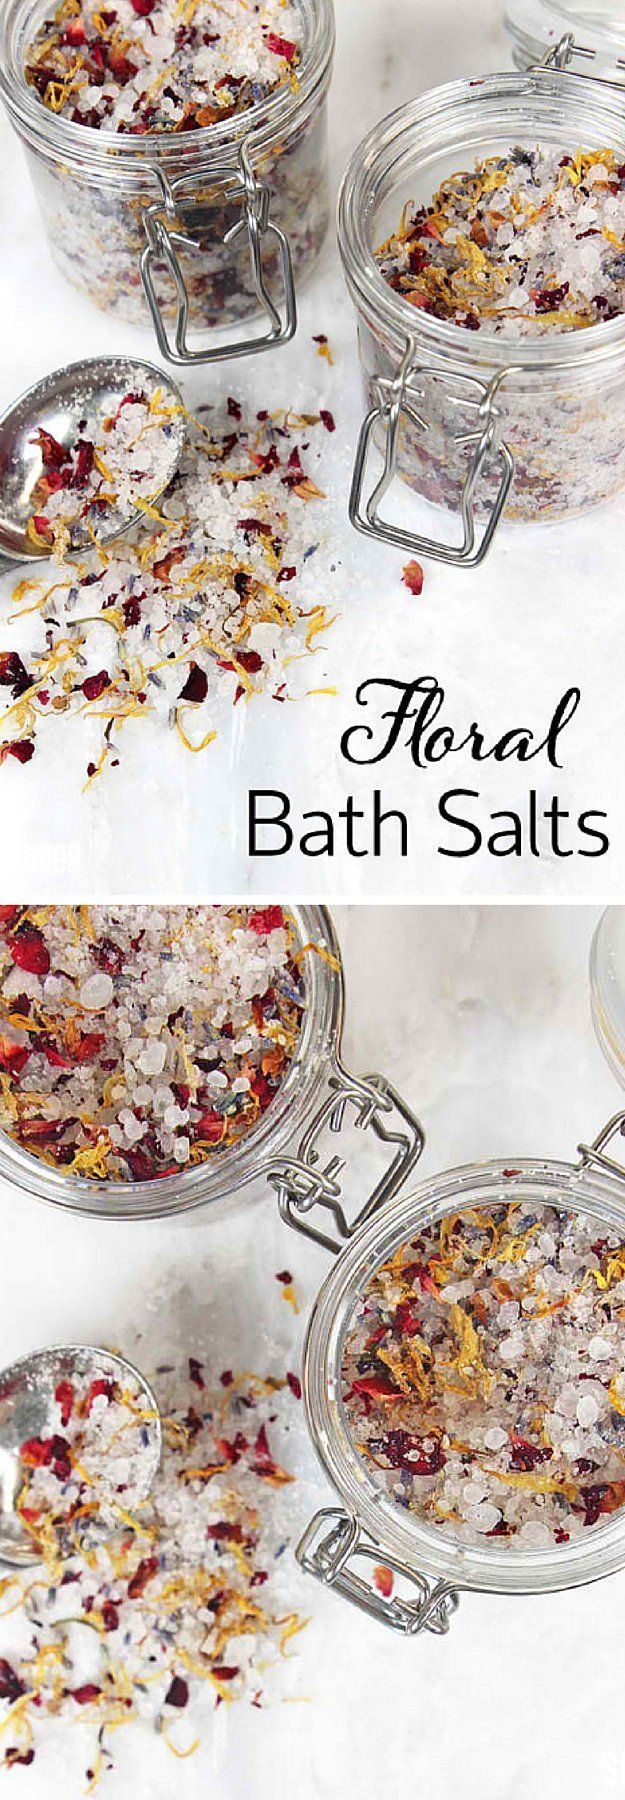 17 Easy DIY Bath Salt Recipe To Try At Home #diybeauty